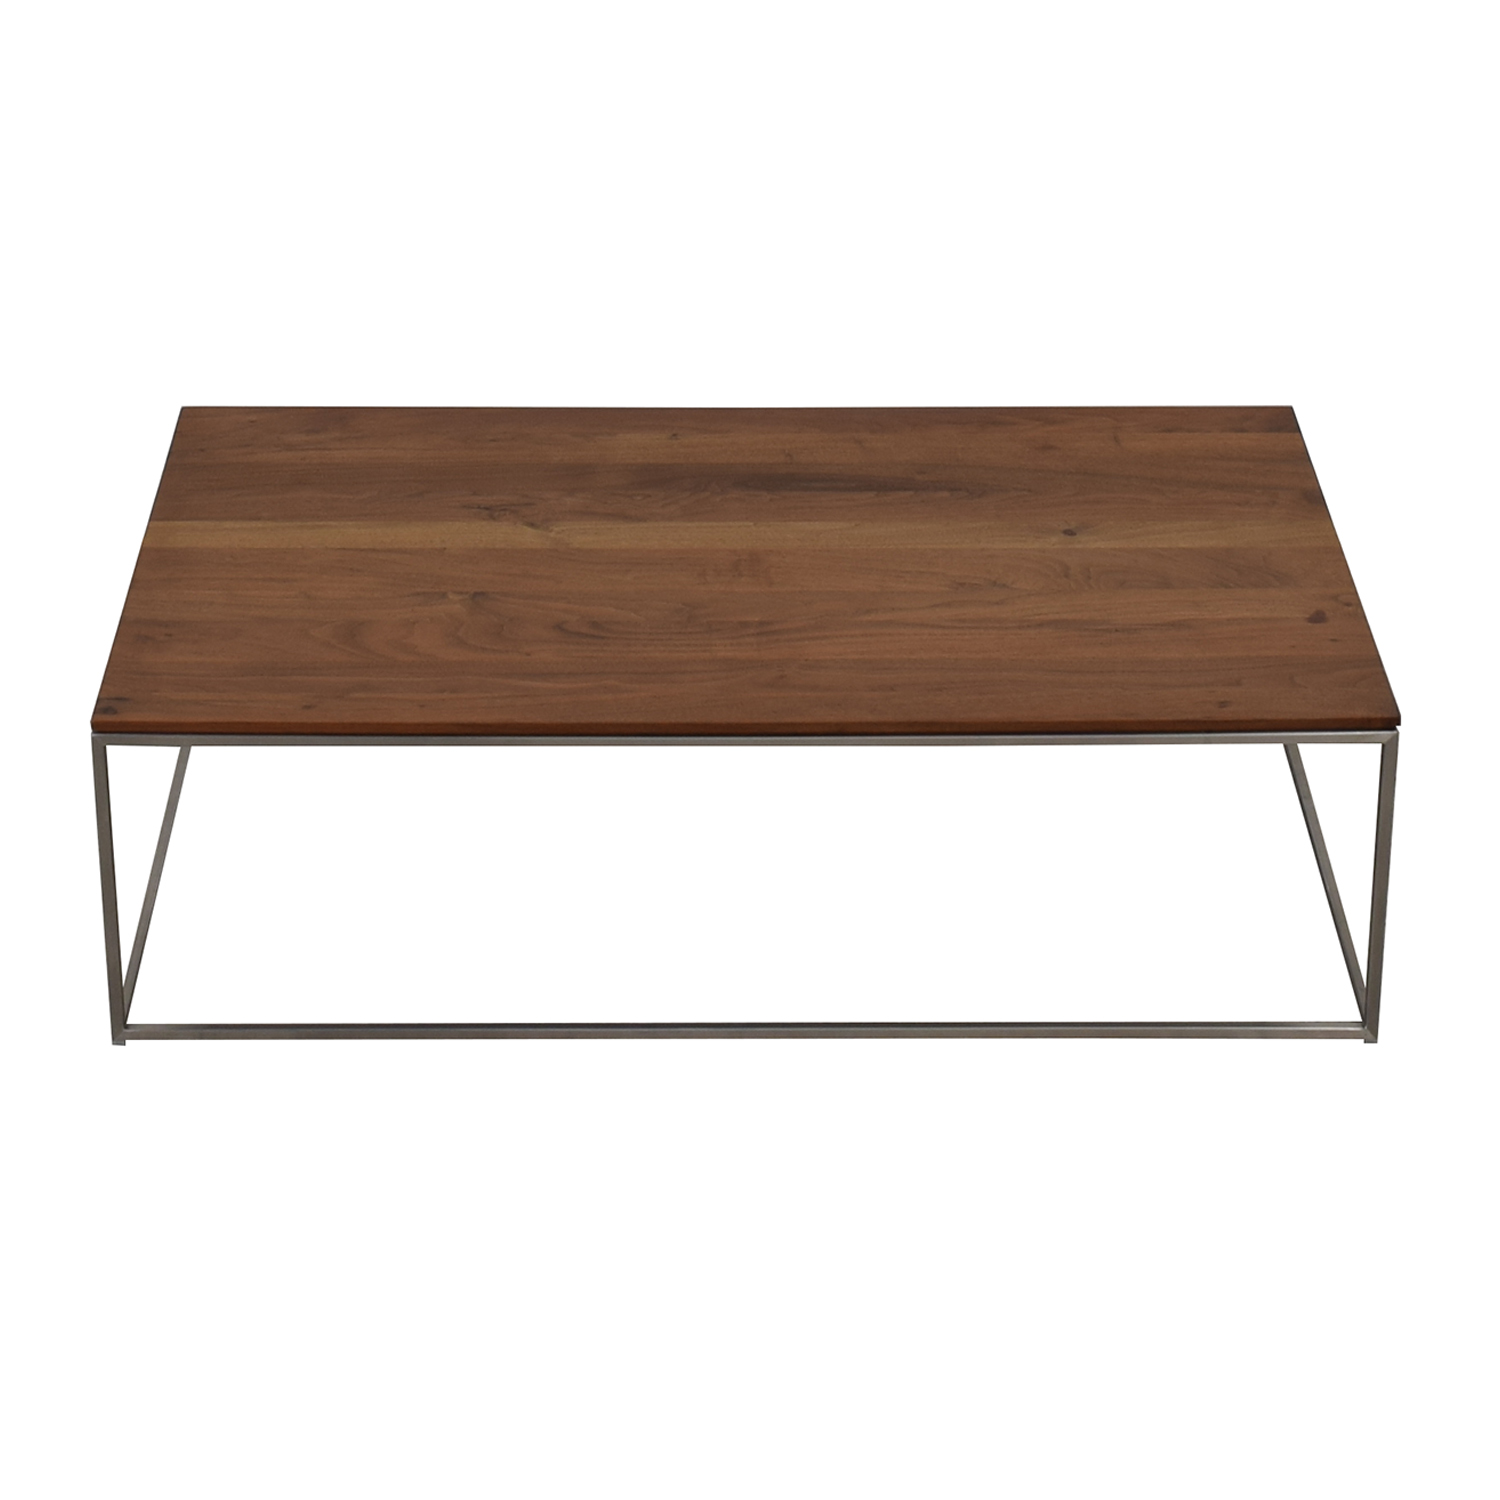 Crate & Barrel Crate & Barrel Frame Medium Coffee Table nj